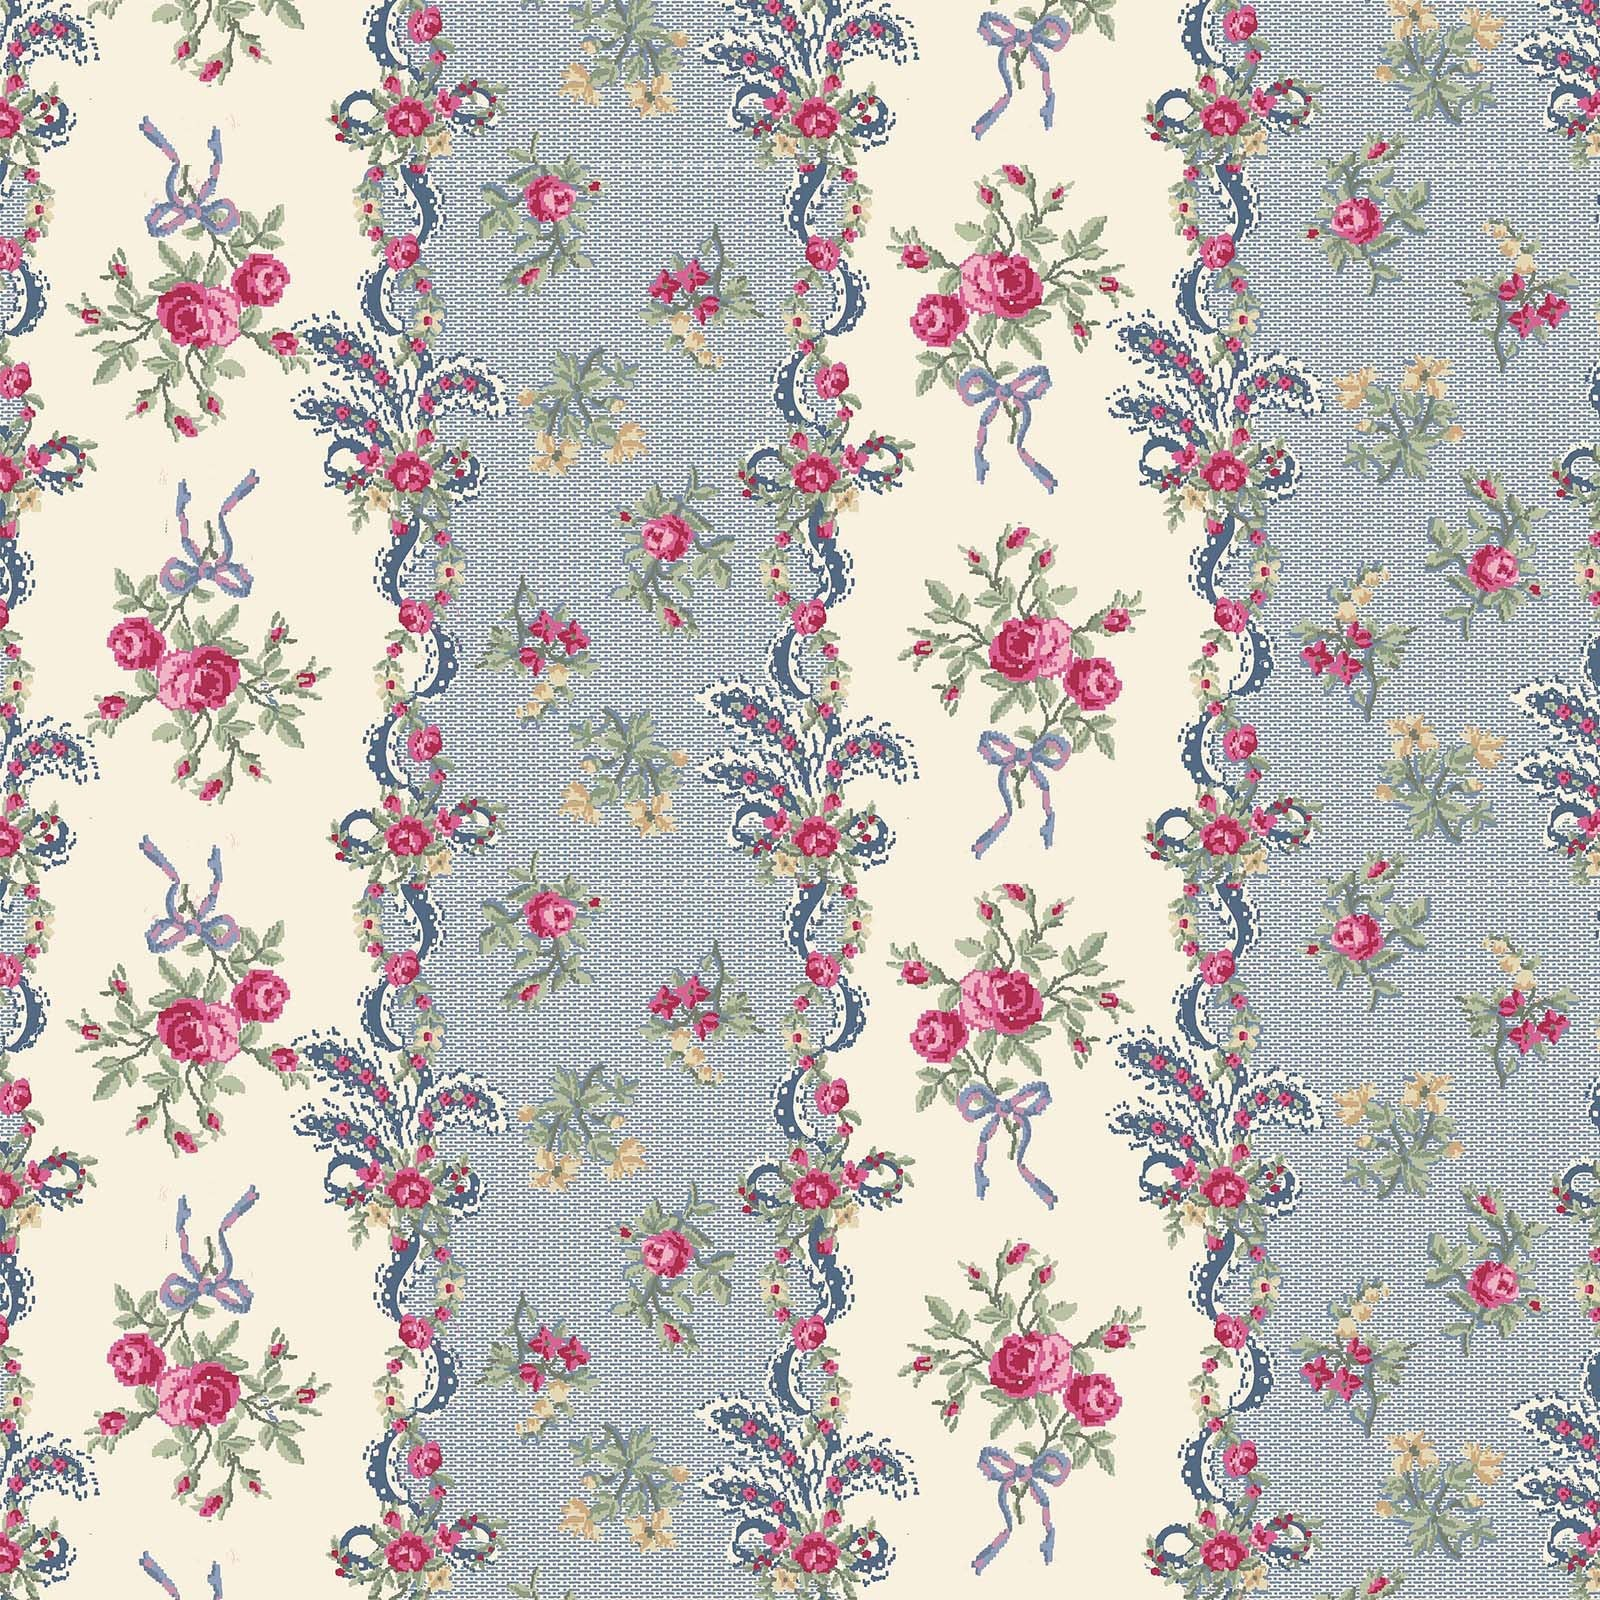 Ruru Rose Bouquet in Paris cotton fabric by Quilt Gate Ru2370-13E Green Stripes Blue